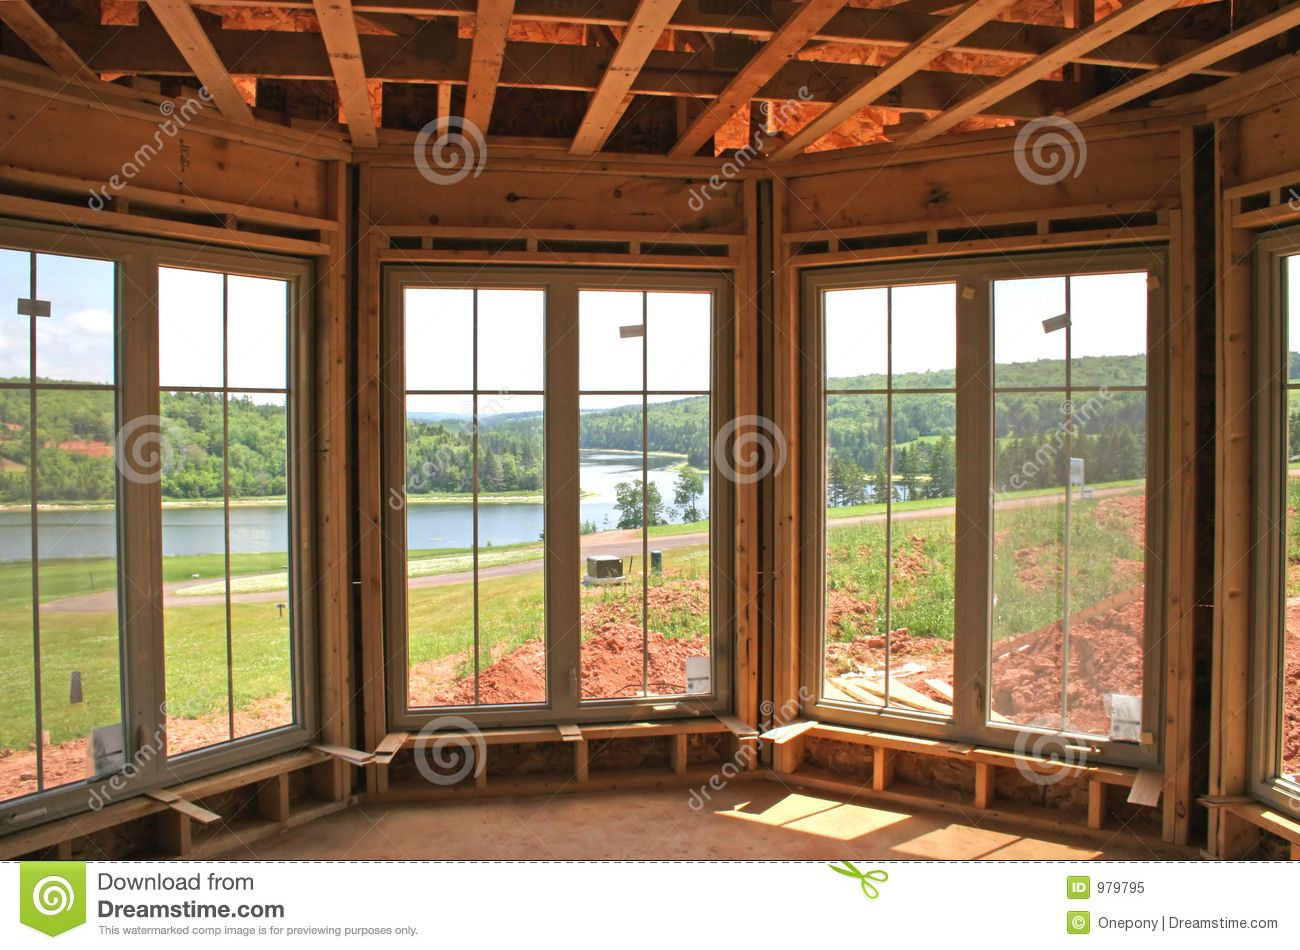 Great Windows With A Great View Home Loan Investment Bank Fsb Is Proud To Offer Customers The Fha Title I Home Improvement Loan Call Me To Home Improvement Loans Home Improvement